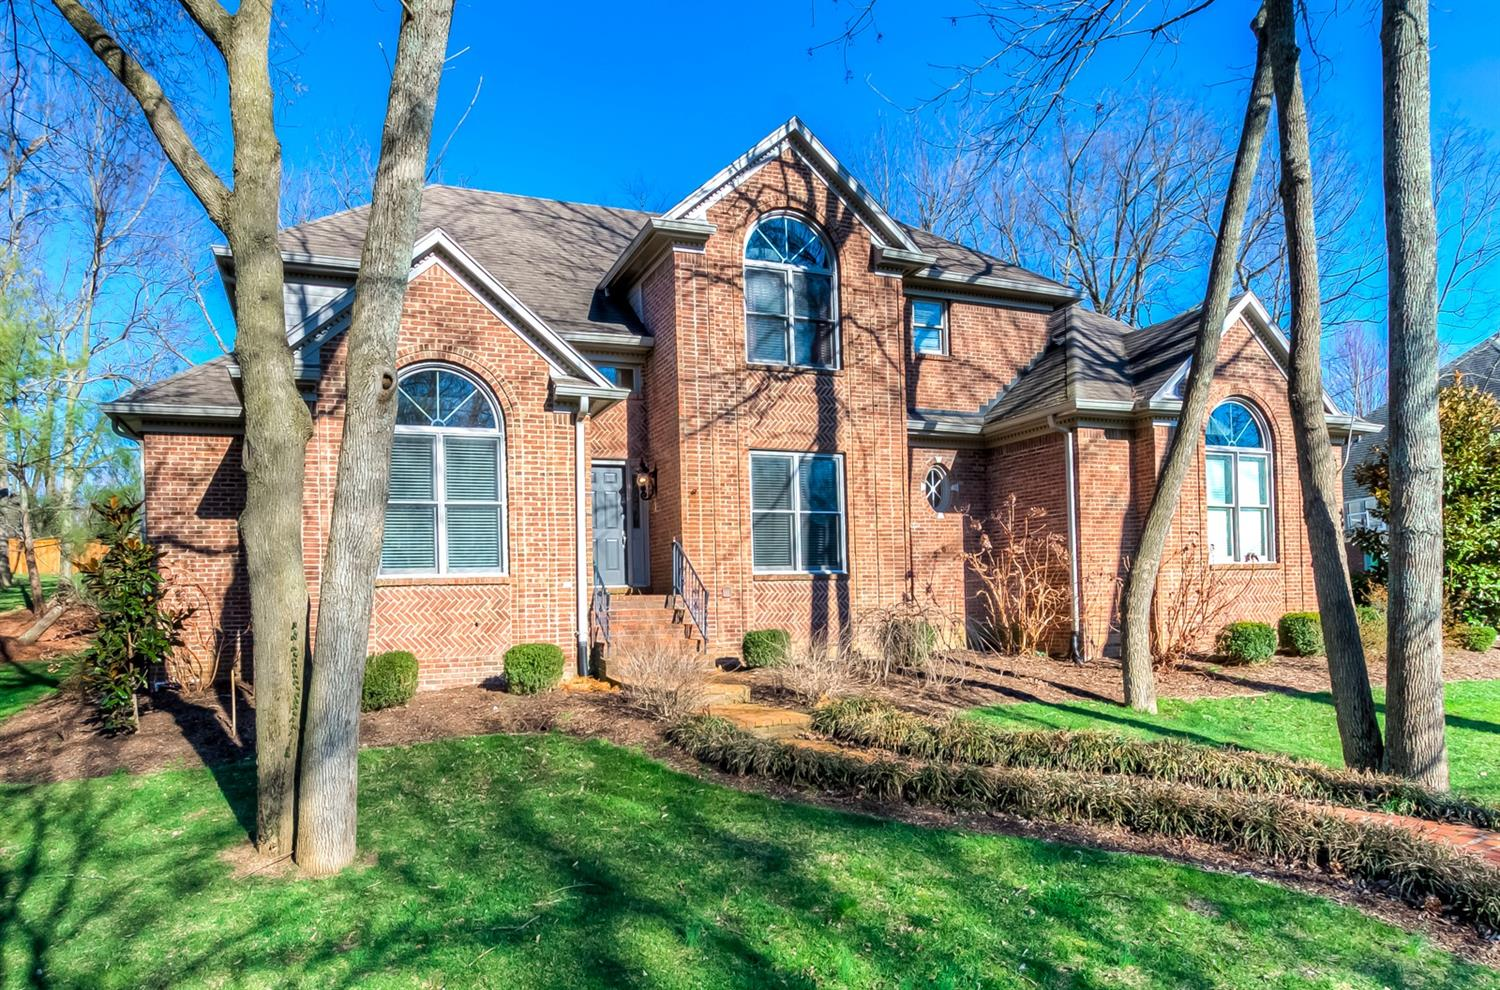 Great%20potential%20at%20a%20bargain%20price!%20in%20Highly%20desired%20Hartland%20Executive.%20Open%20floor%20plan,%20great%20for%20entertaining.%20%20%20First%20Floor%20Master,%20Fireplace%20in%20Kitchen.%20Upstairs%20features%203%20large%20bedrooms,%202%20with%20a%20Jack%20n%20Jill%20bath,%20the%20other%20with%20it's%20own%20ensuite%20bath.%20Finished%20basement%20features%20custom%20square%20bar,%20fireplace,%20built%20in,%20rec%20room,%20full%20bath,%20and%205th%20bedroom%20with%20window.%20Over%205,200%20sq%20ft%20of%20spacious%20living%20areas.%20ALL%20OFFERS%20CONSIDERED